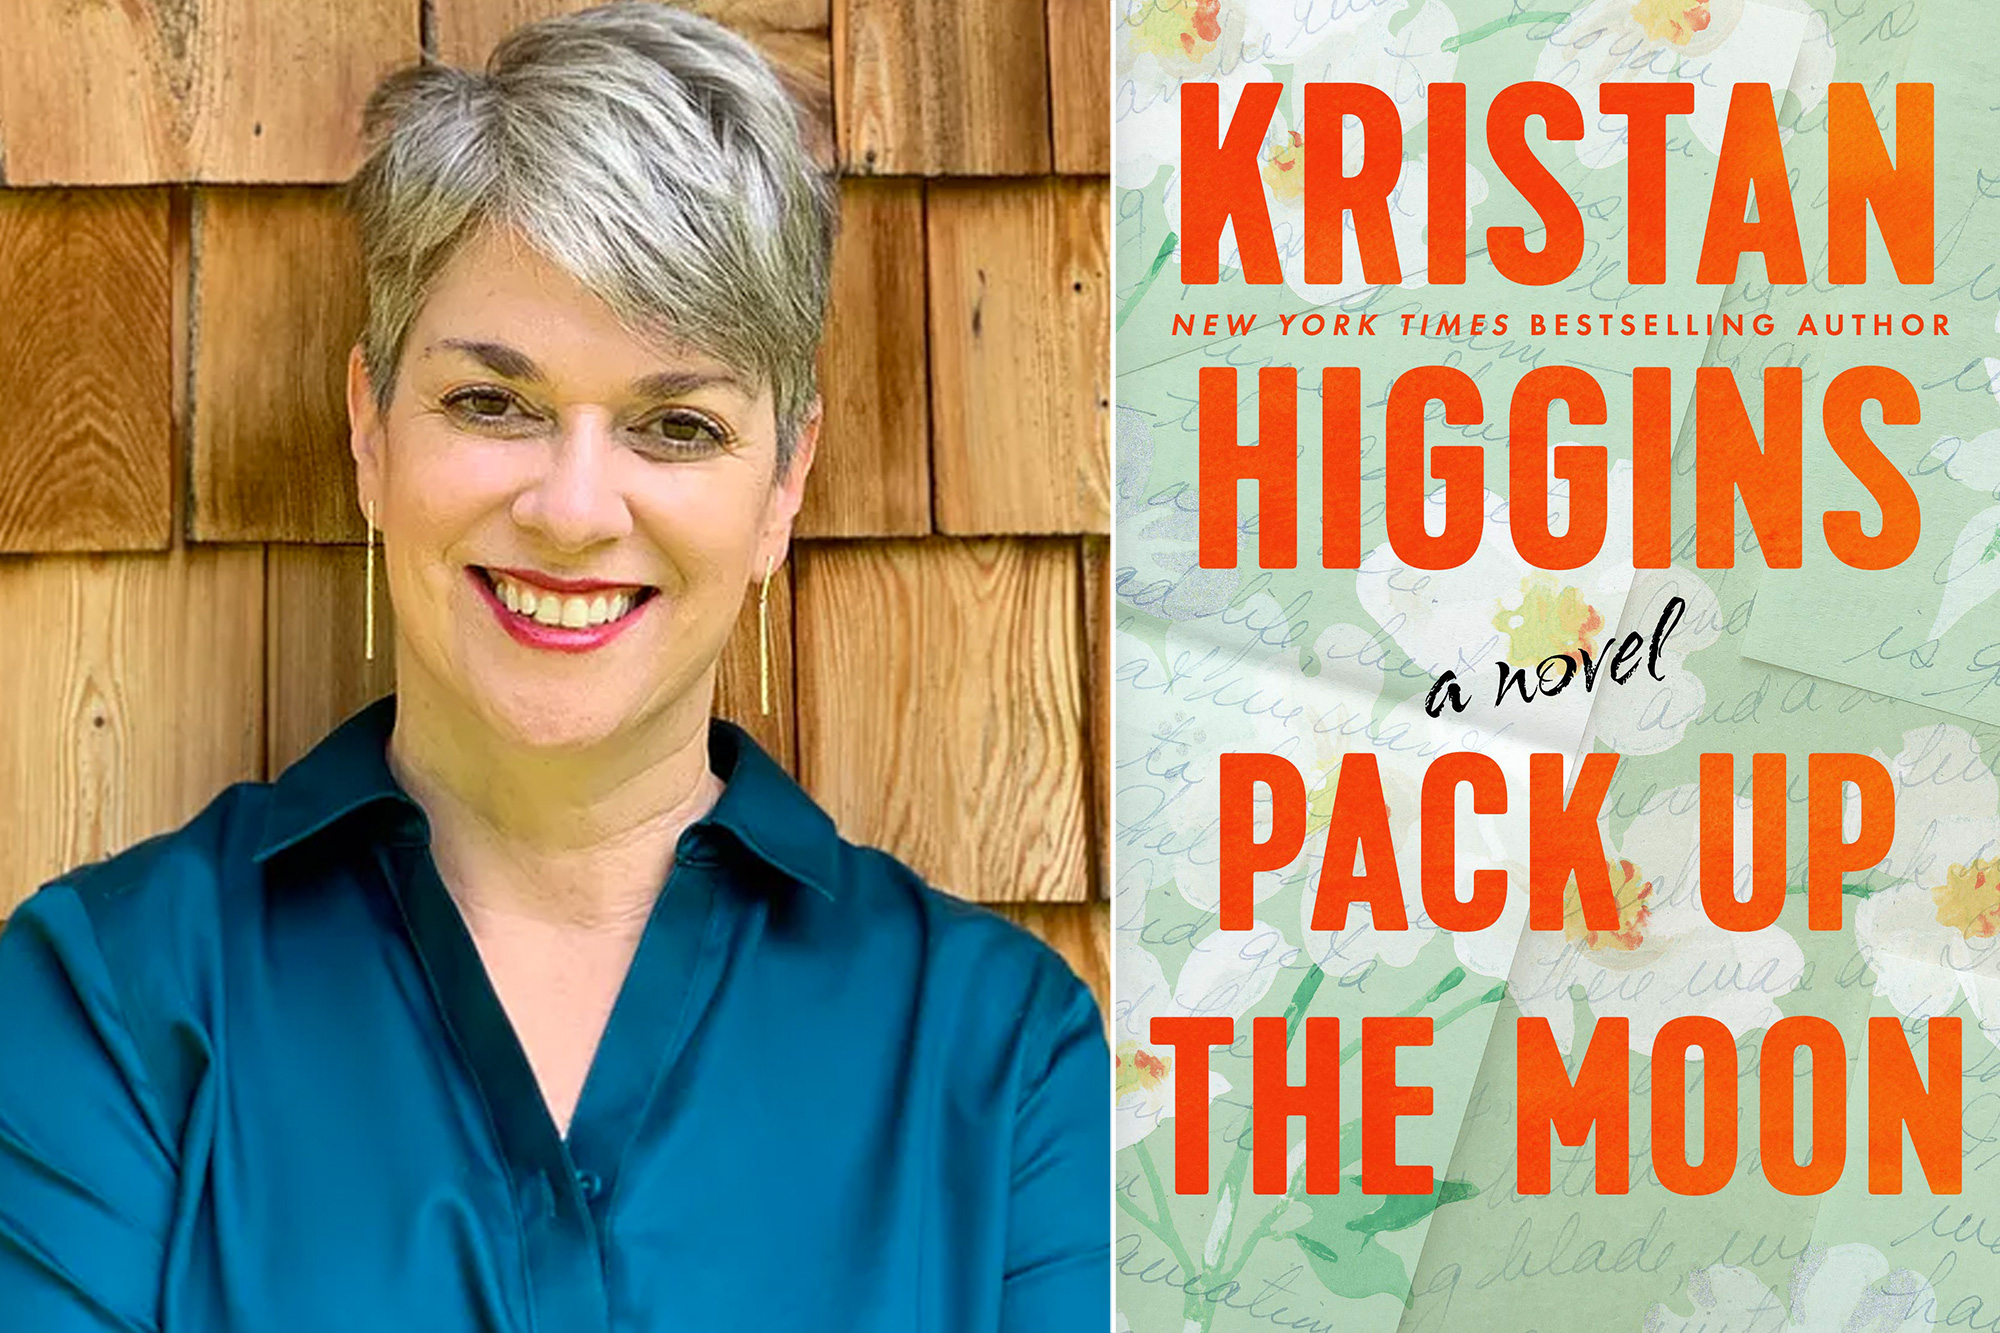 Kristan Higgins Author Photo and Pack Up the Moon Book Cover